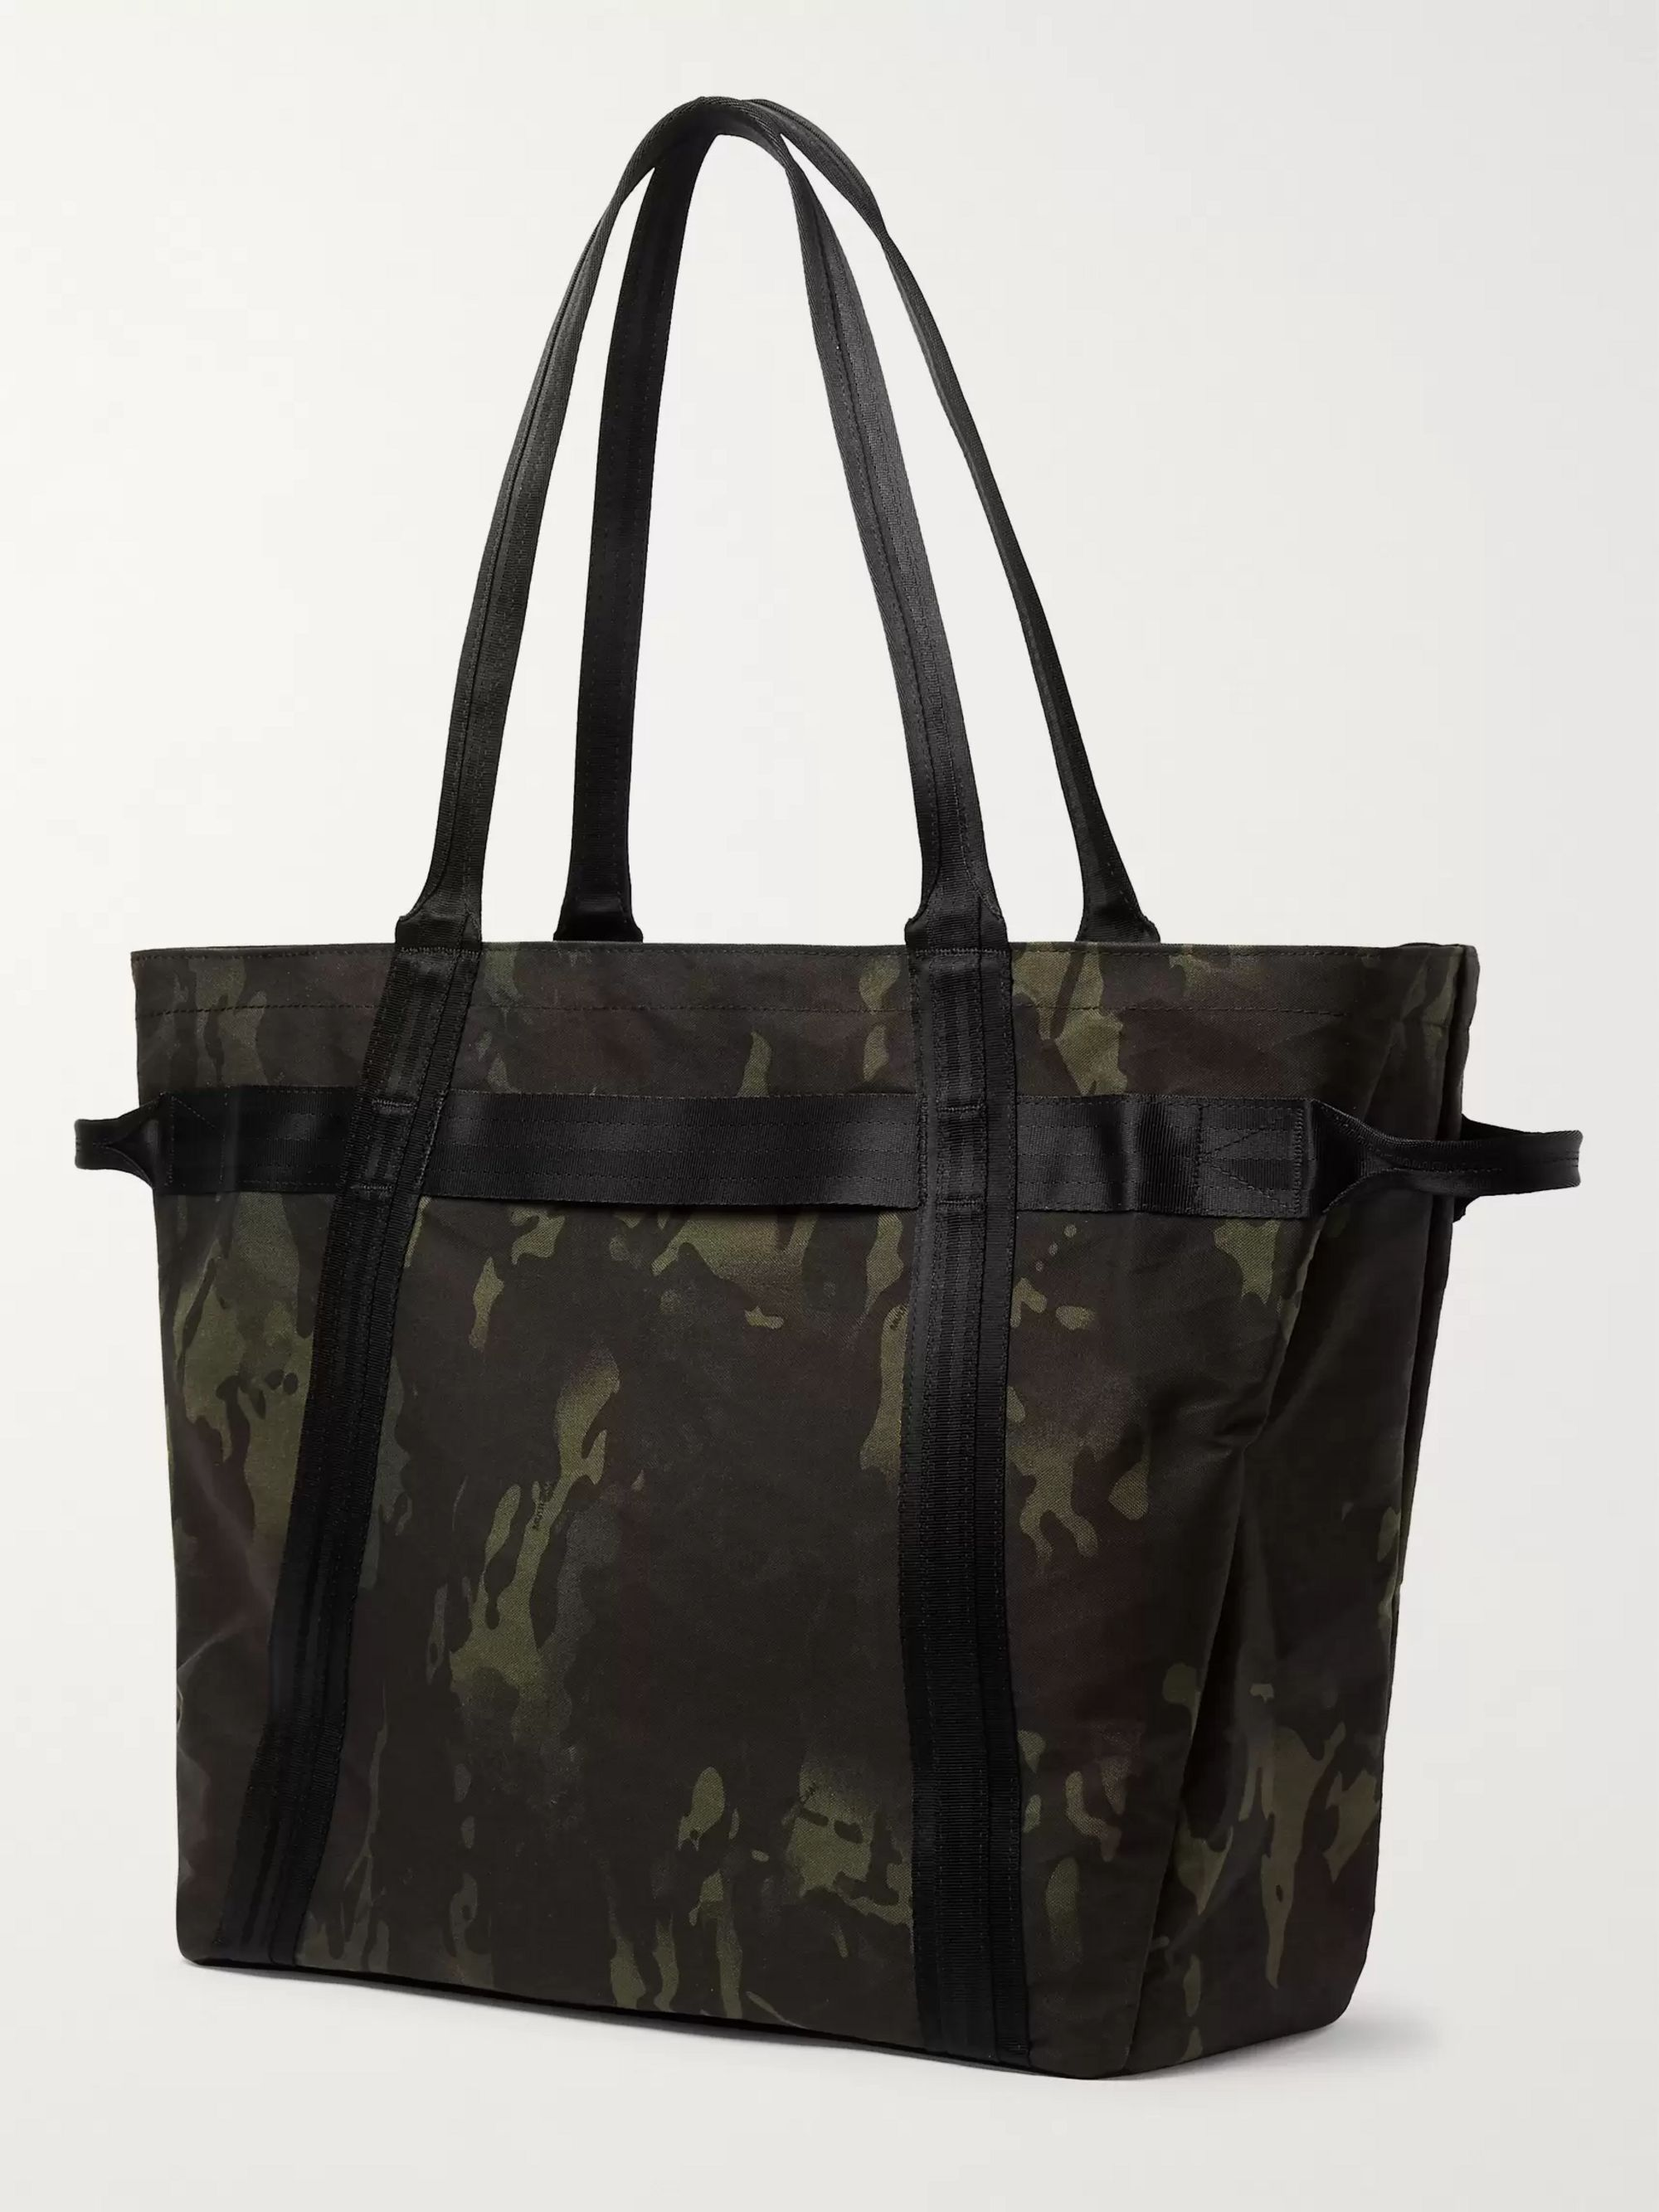 Herschel Supply Co Alexander Camouflage-Print Sailcloth Tote Bag